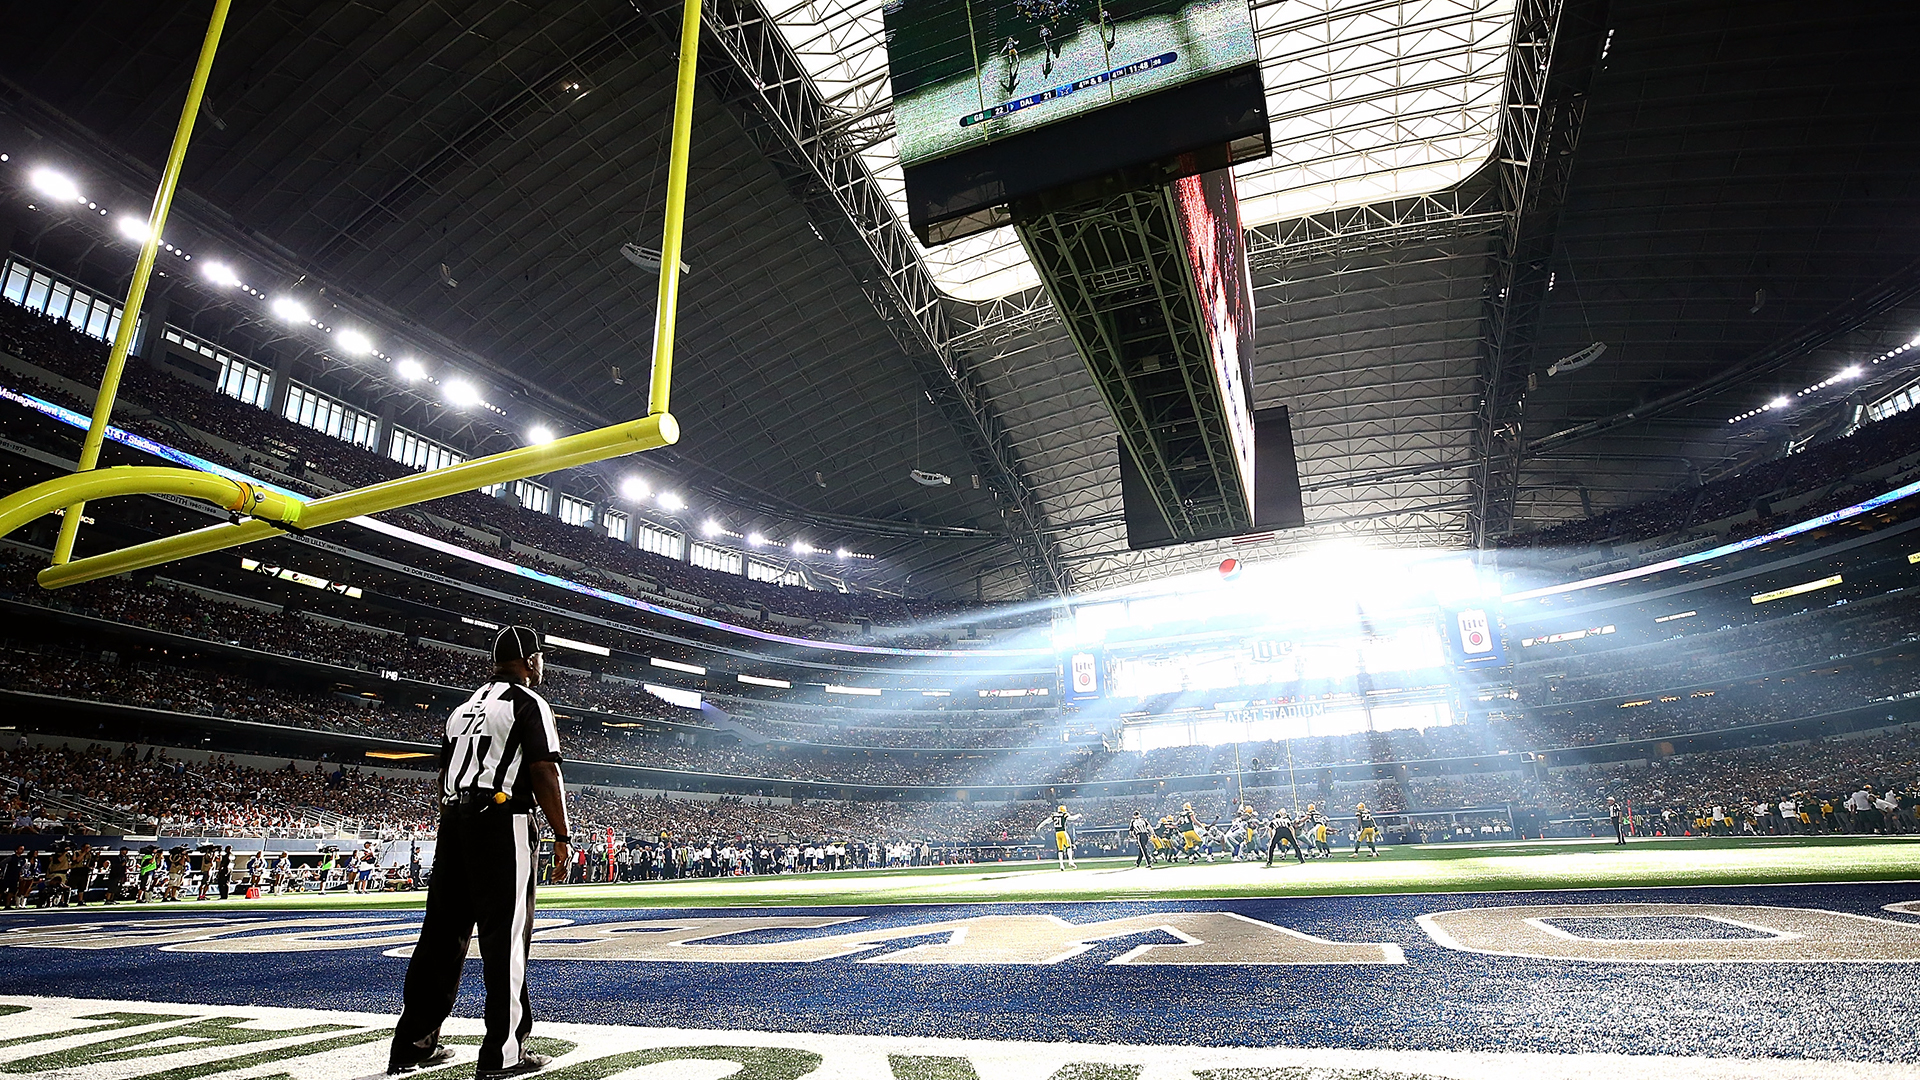 Cowboys Packers at AT&T Stadium-159532.jpg77905905